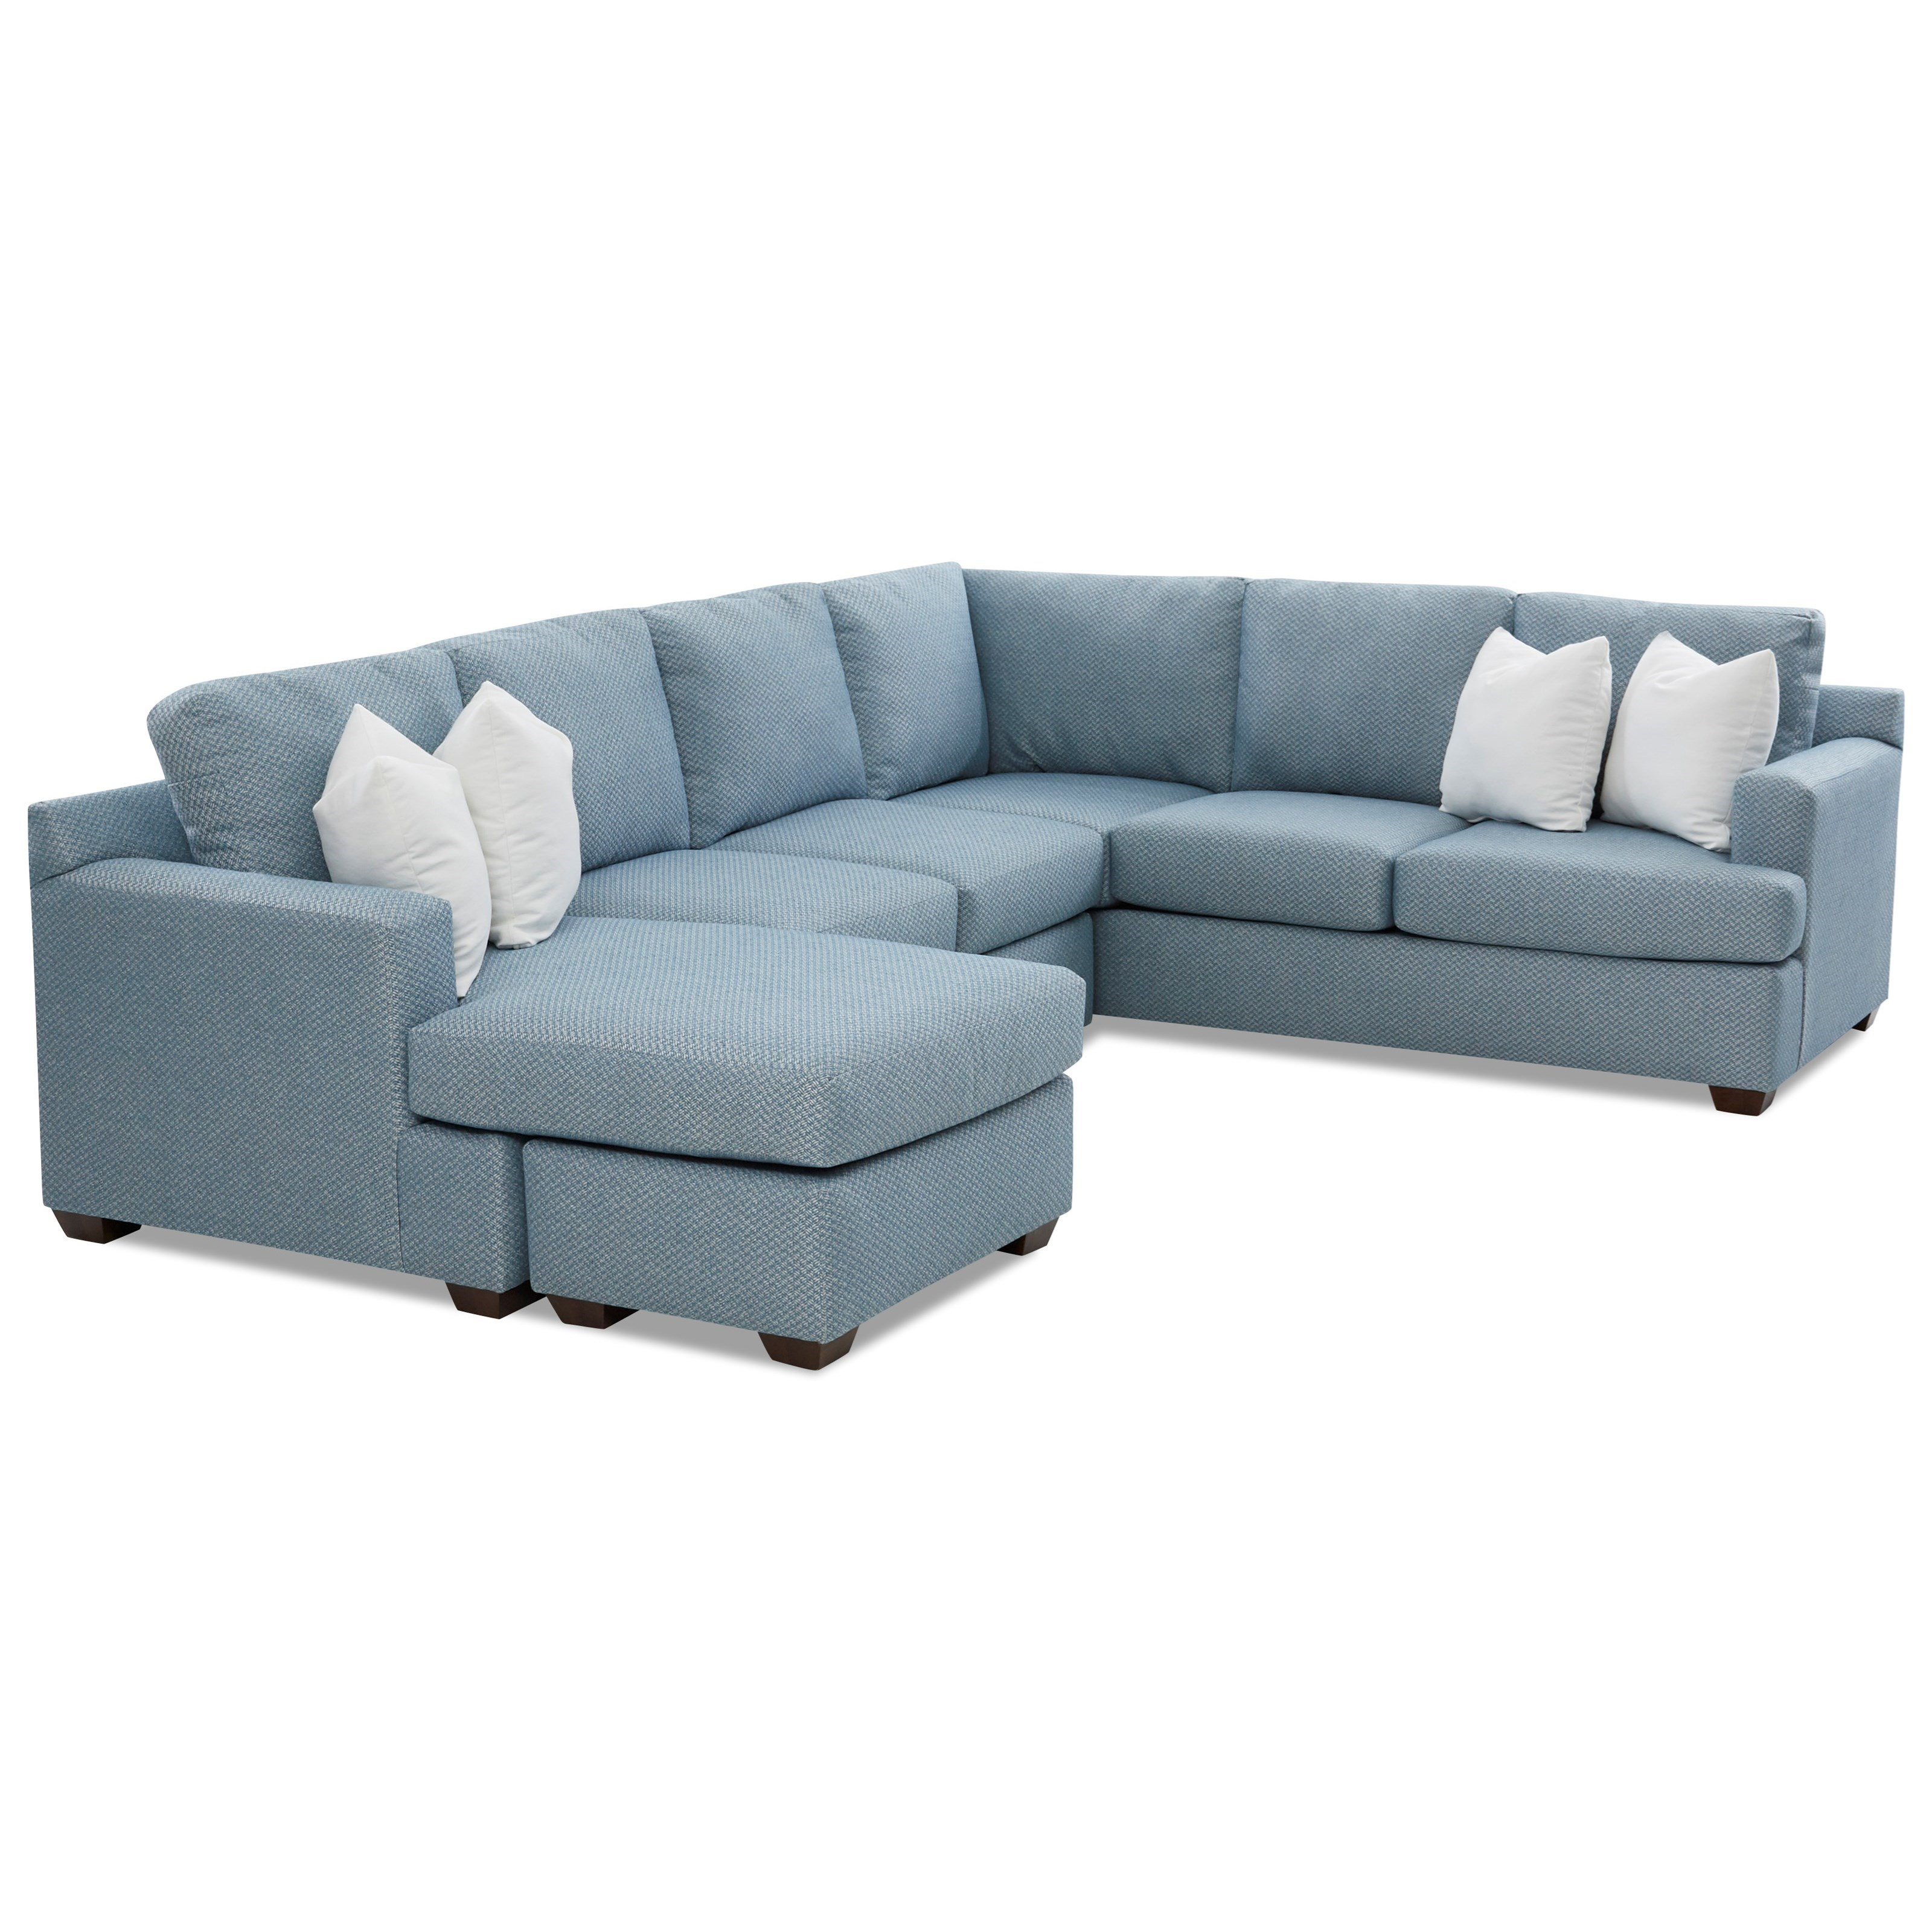 Juniper 5-Seat Sectional Sofa with LAF Chaise Ottoman by Klaussner at  Furniture Barn